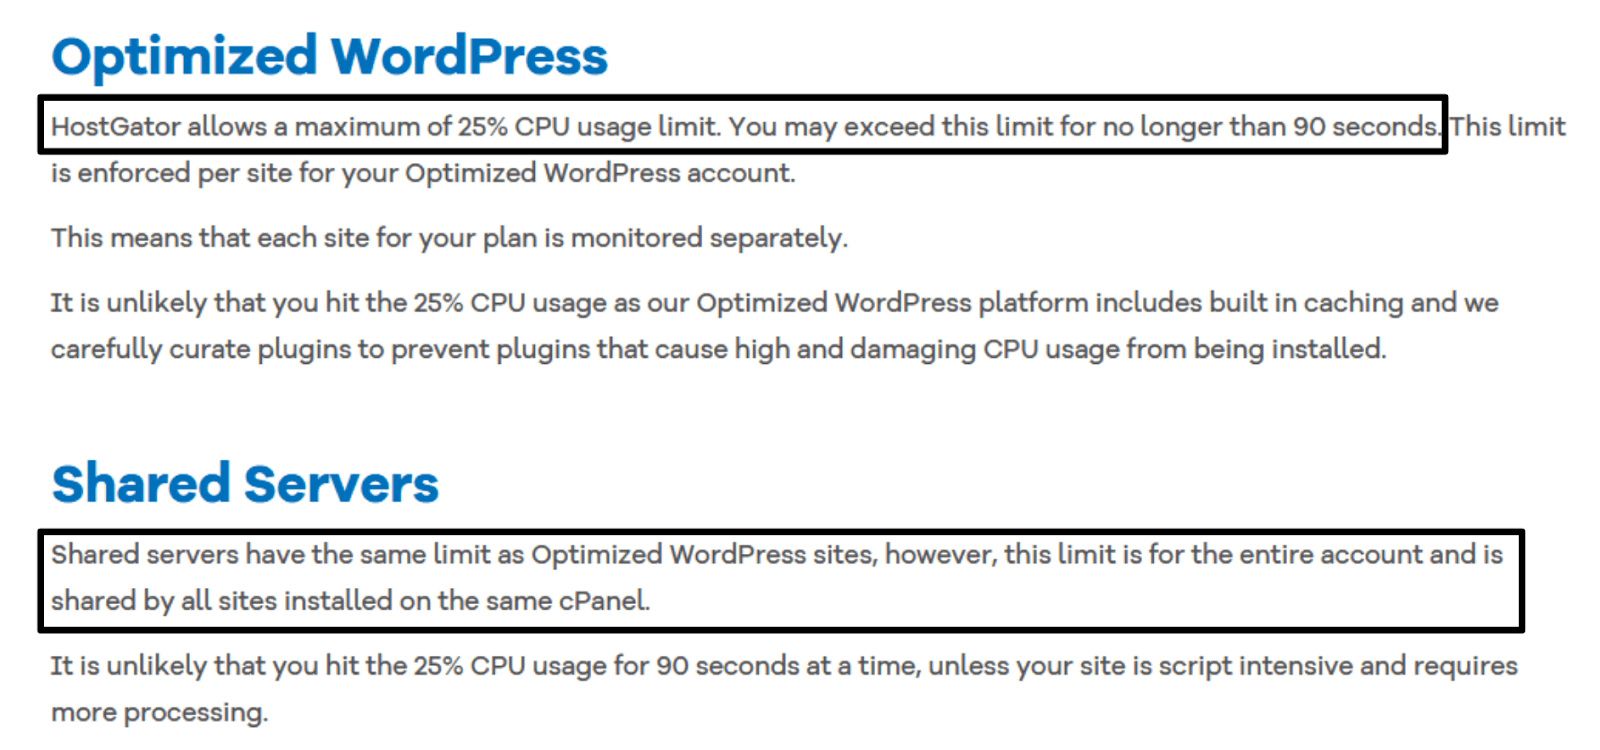 HostGator Terms of Service - CPU usage limits and shared server limits